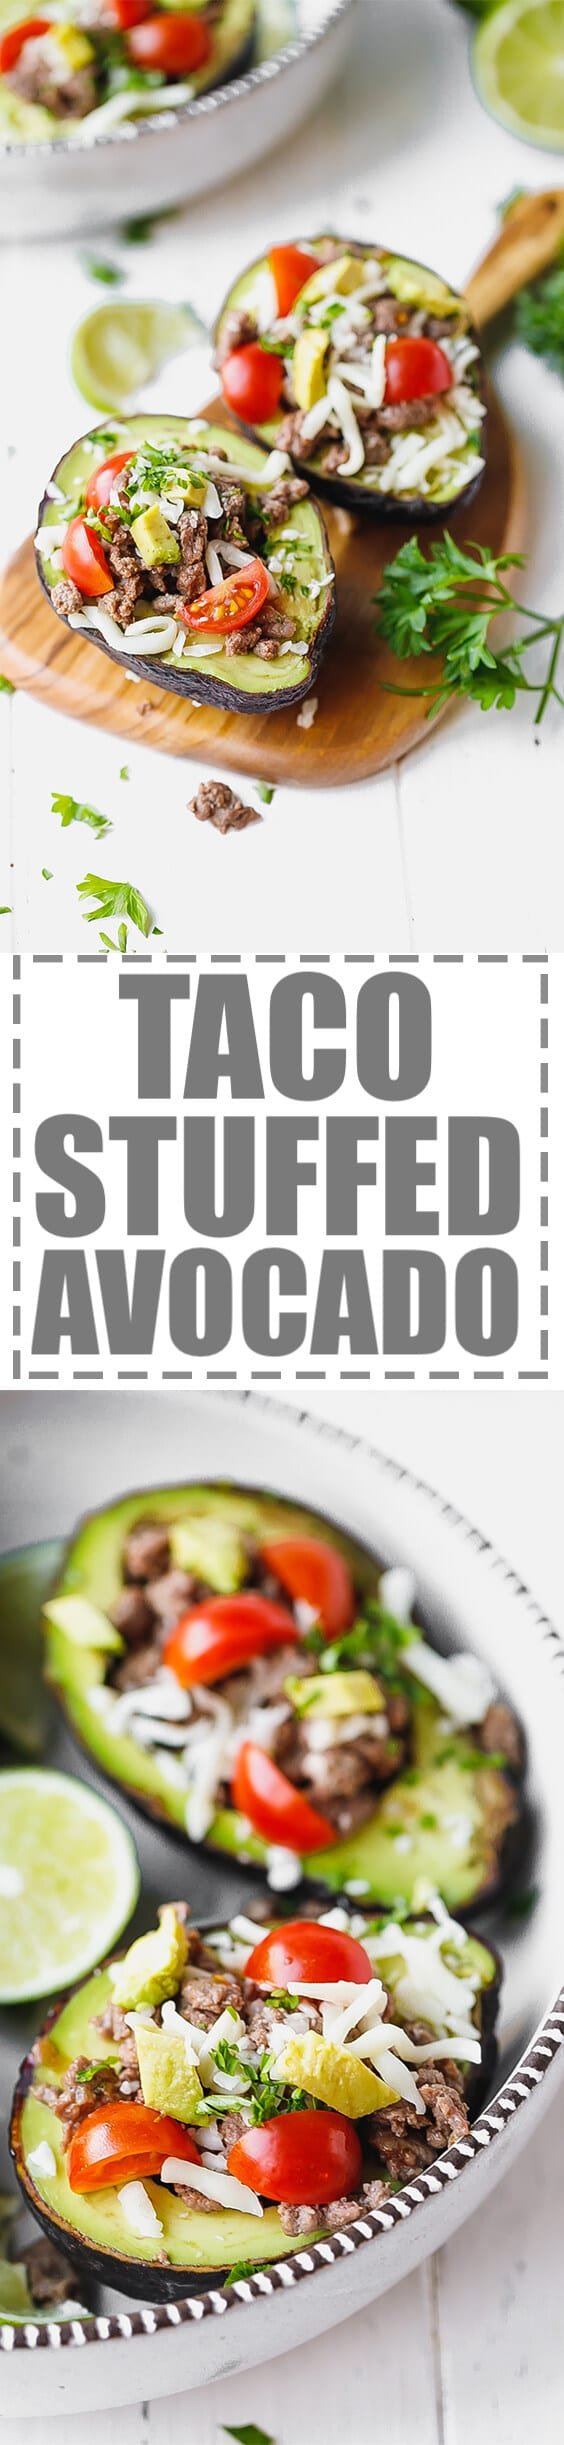 Taco Stuffed Avocado {Keto, Low-Carb}  - very quick and easy to make, great for an appetizer or main dish. Gluten free, made with just a few simple ingredients. #ketorecipes #avocadorecipes #lowcarb #stuffedavocado